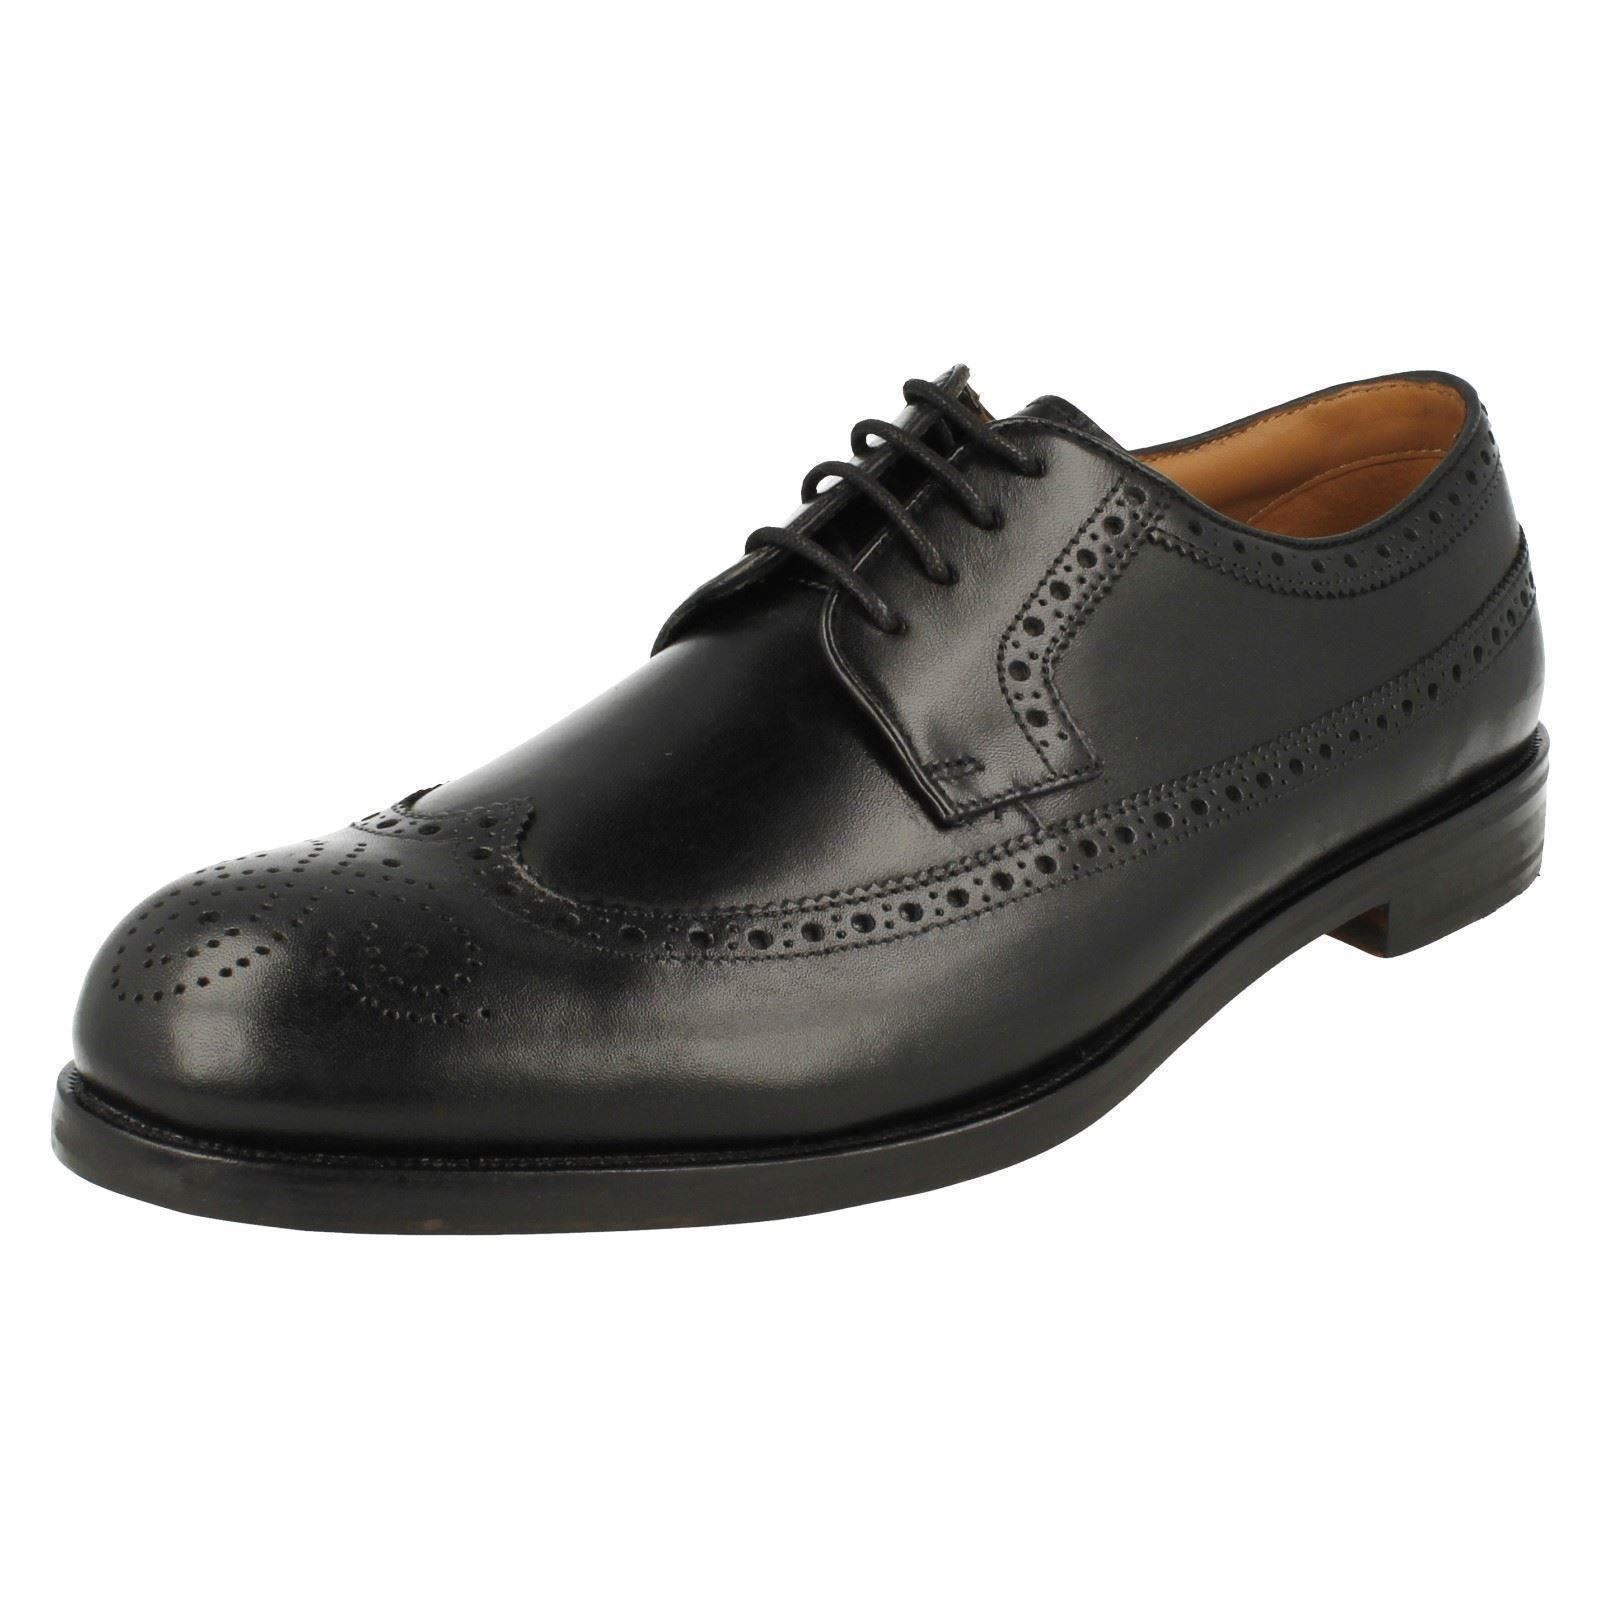 Mens Clarks Formal Brogue Style Lace Up Shoes. Coling ...